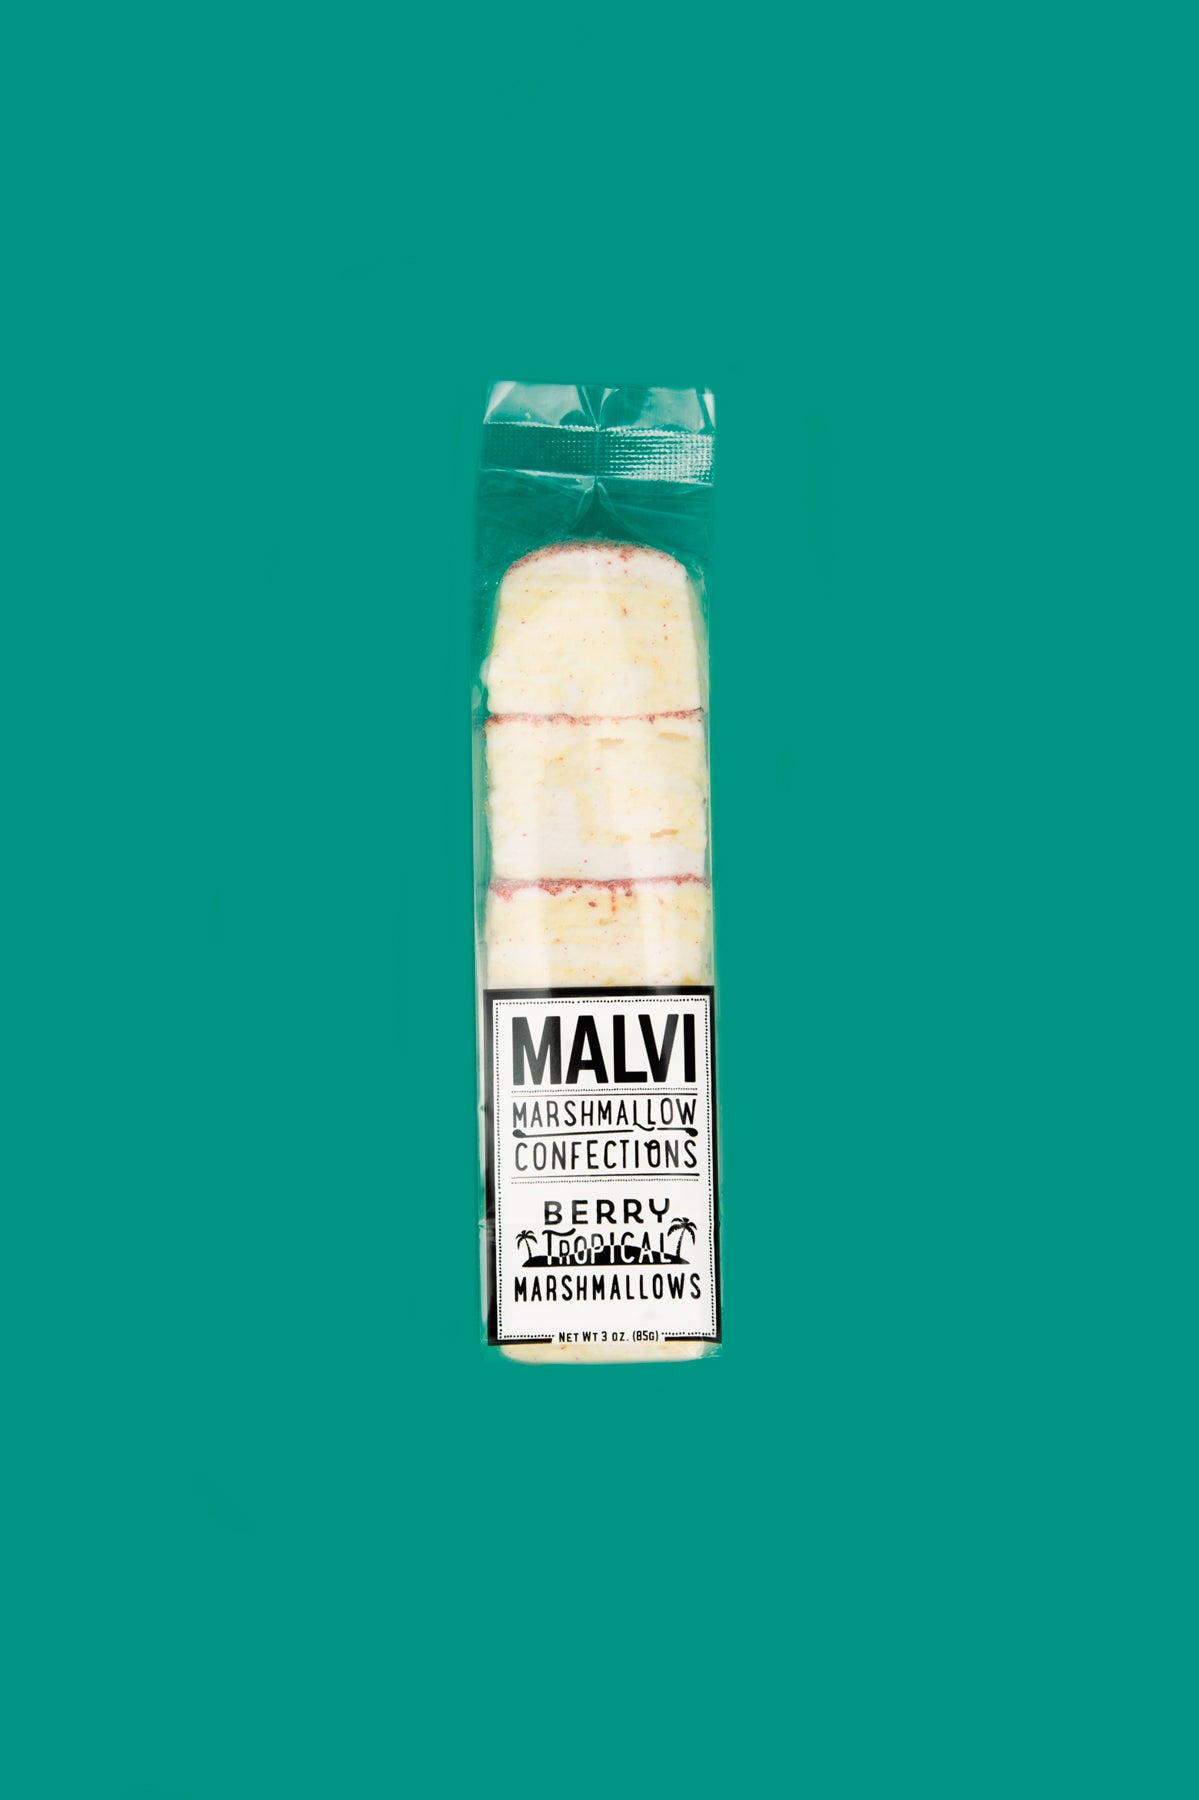 Malvi Mallow Party Pack - 18 x Marshmallow 5-Packs